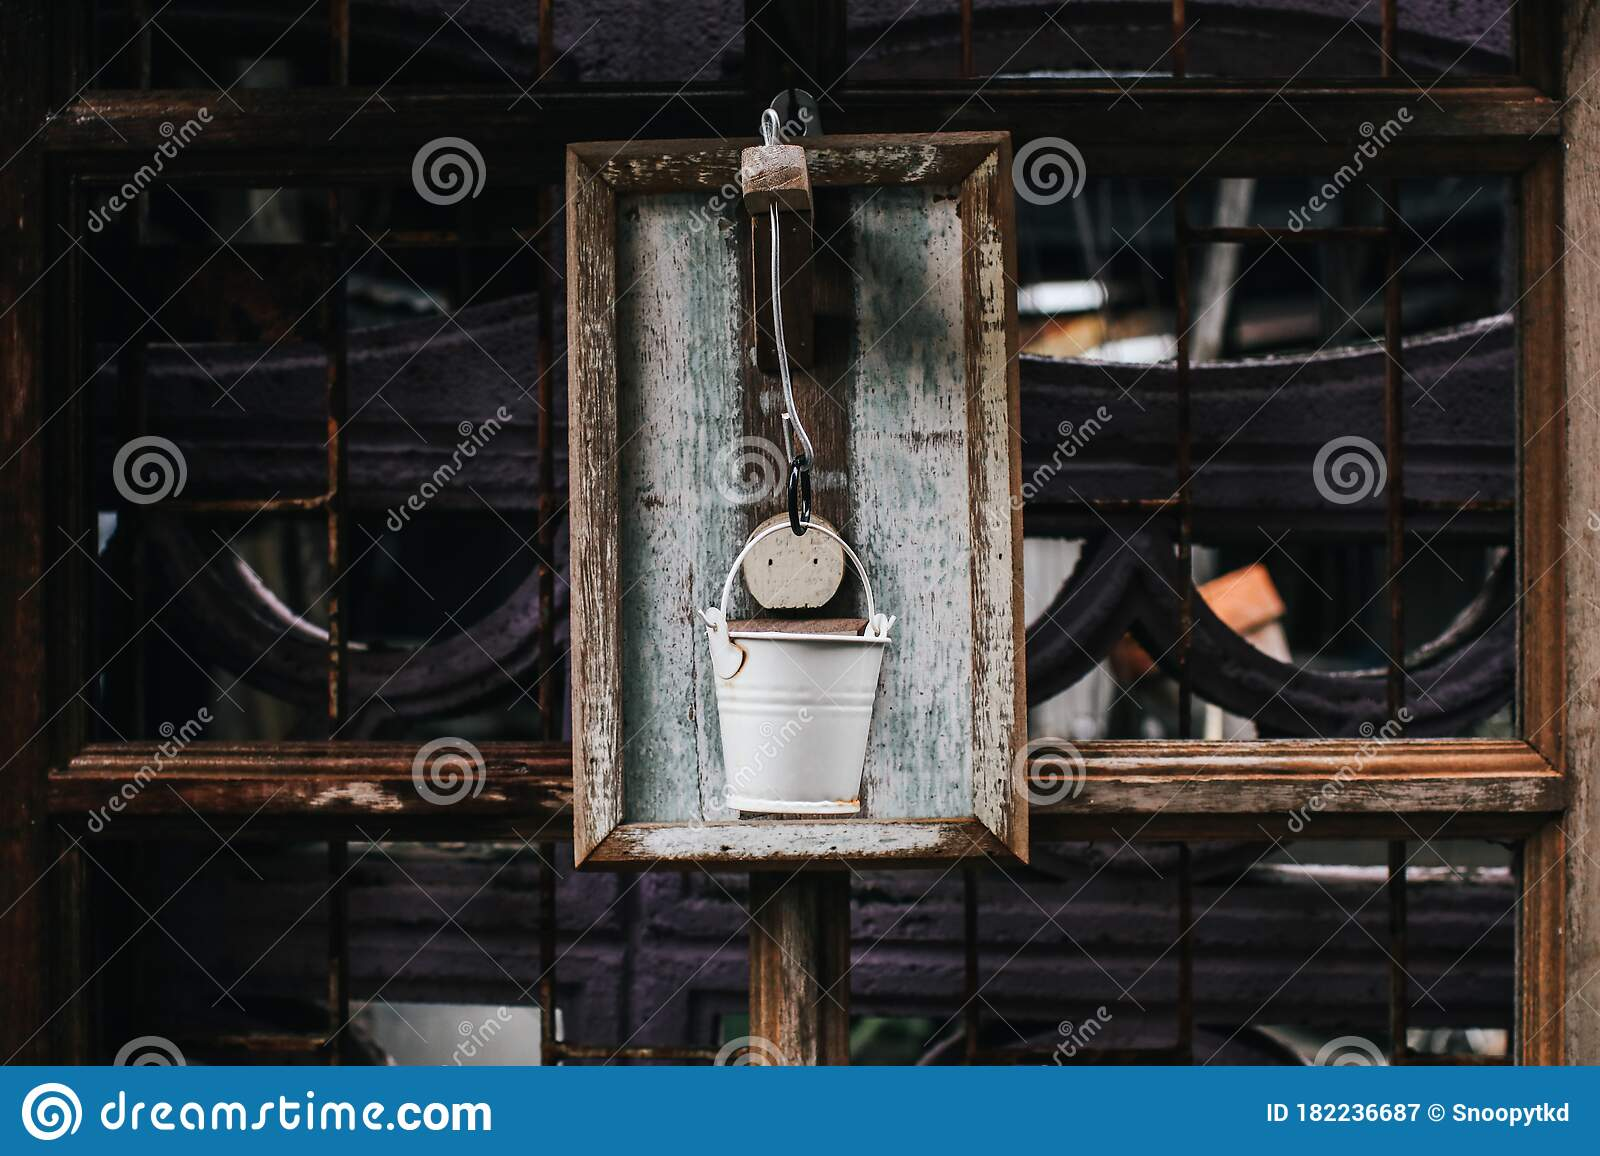 Rustic White Painted Can On White Hanging On Wall Outdoors Aged Rusty Iron Little Bell Concept Decor Element In Interior Of Deck Stock Image Image Of Decoration History 182236687